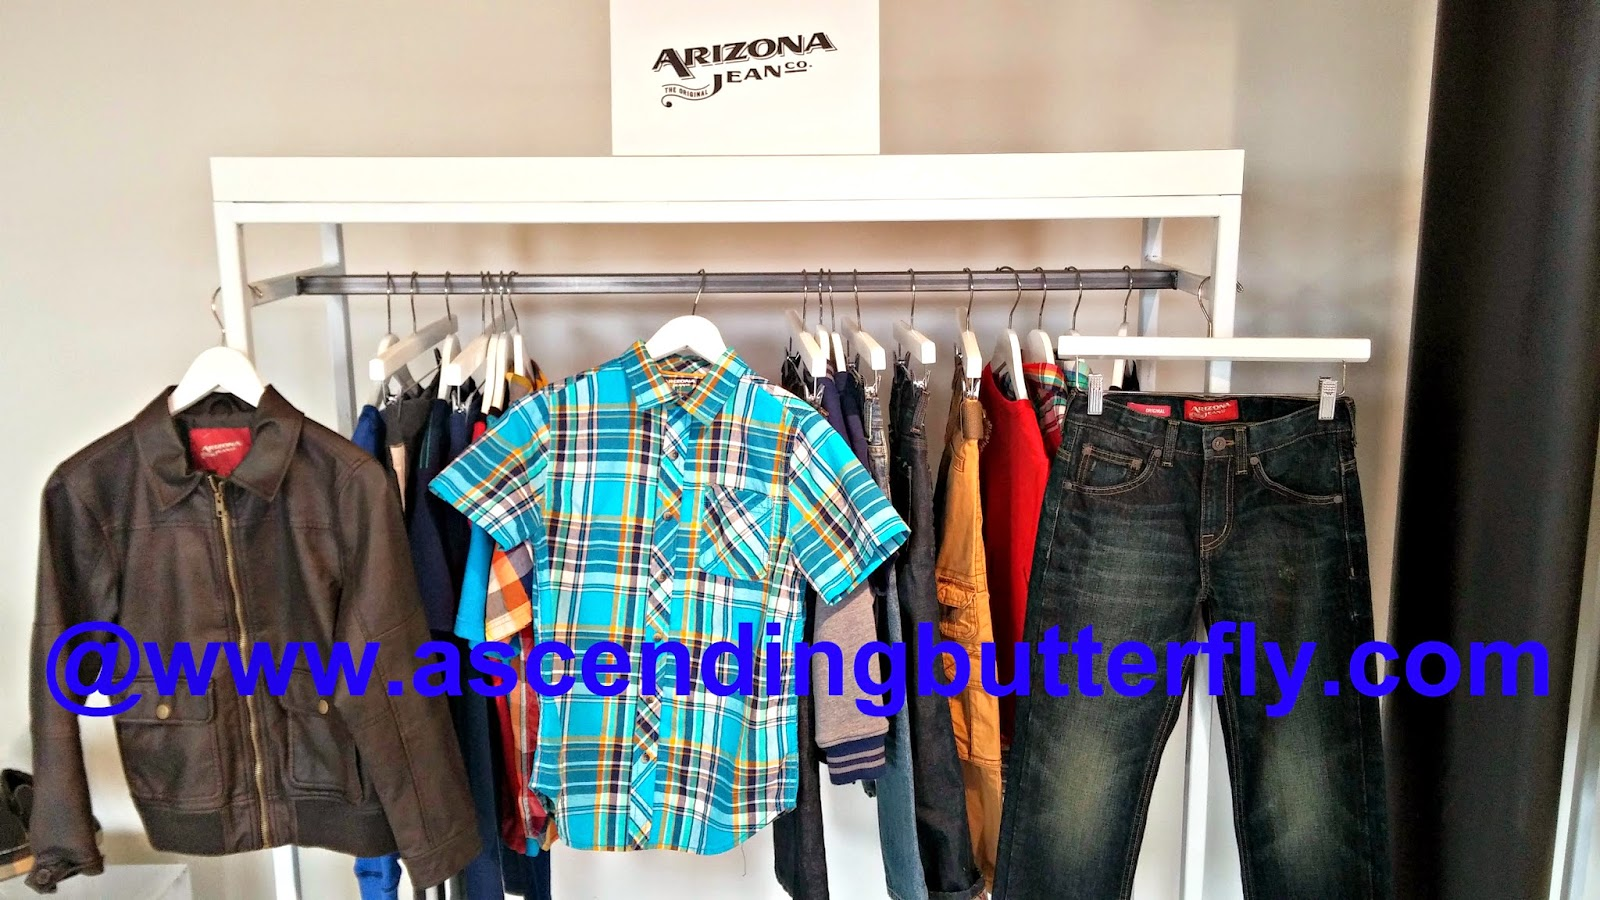 Arizona Jeans for Boys via JCPenney 2014 Back-to-School Press Preview, boys clothing, Arizona Jeans for Men